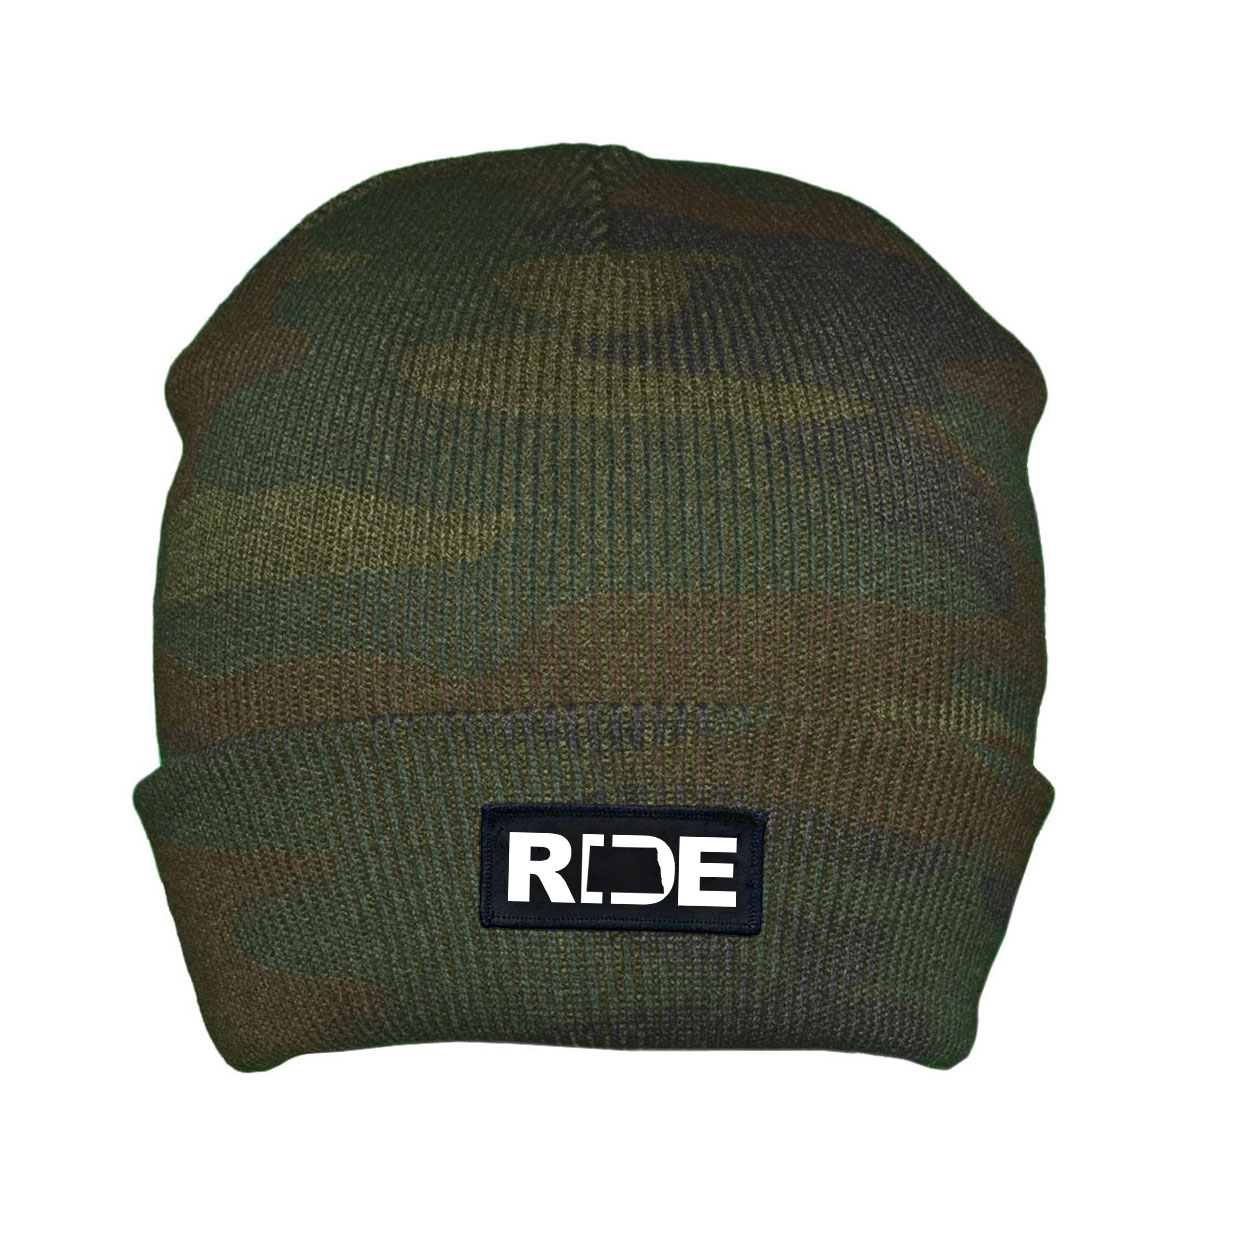 Ride North Dakota Night Out Woven Patch Roll Up Skully Beanie Camo (White Logo)